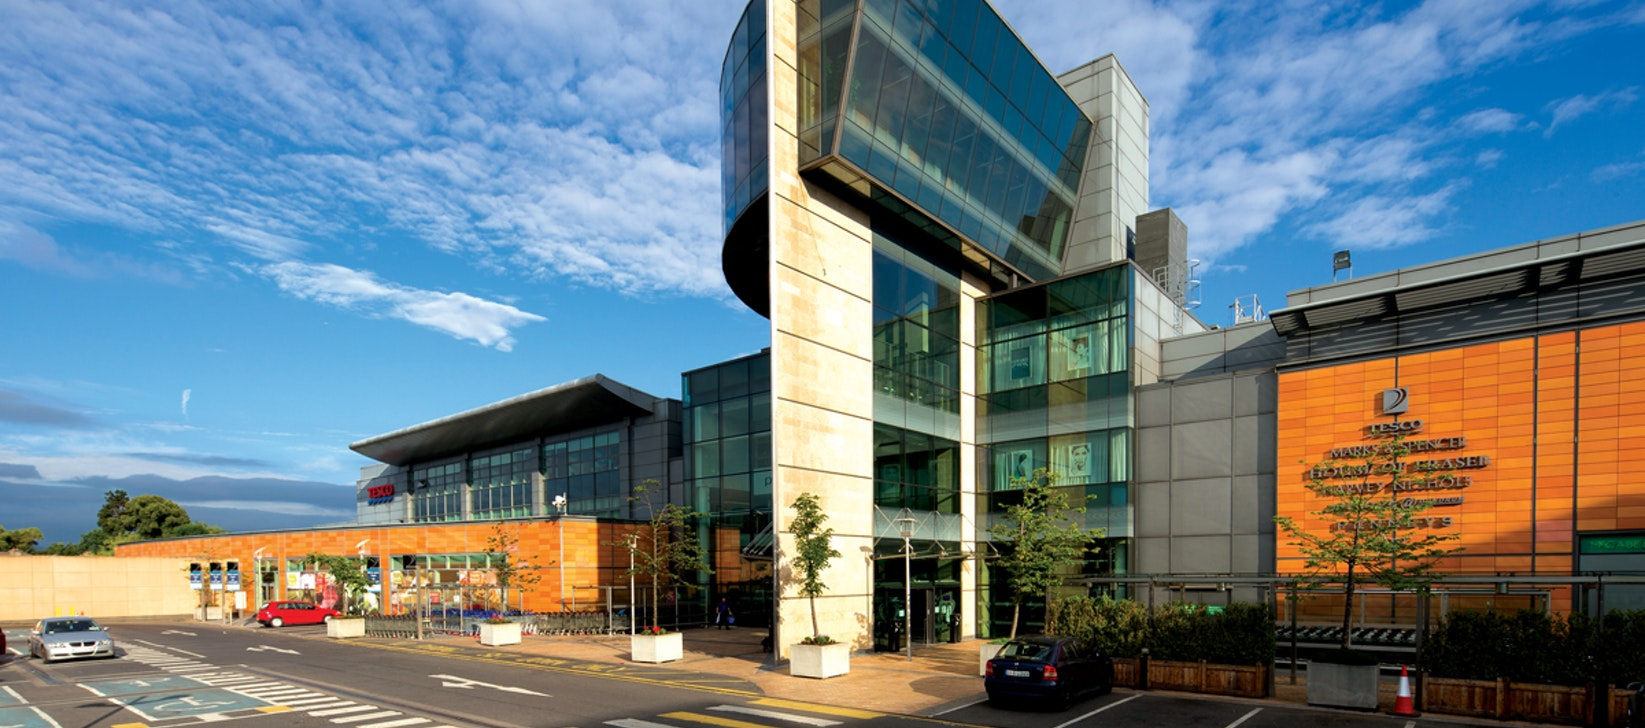 Business activity returns to growth in Dublin in Q3 but faces further challenges